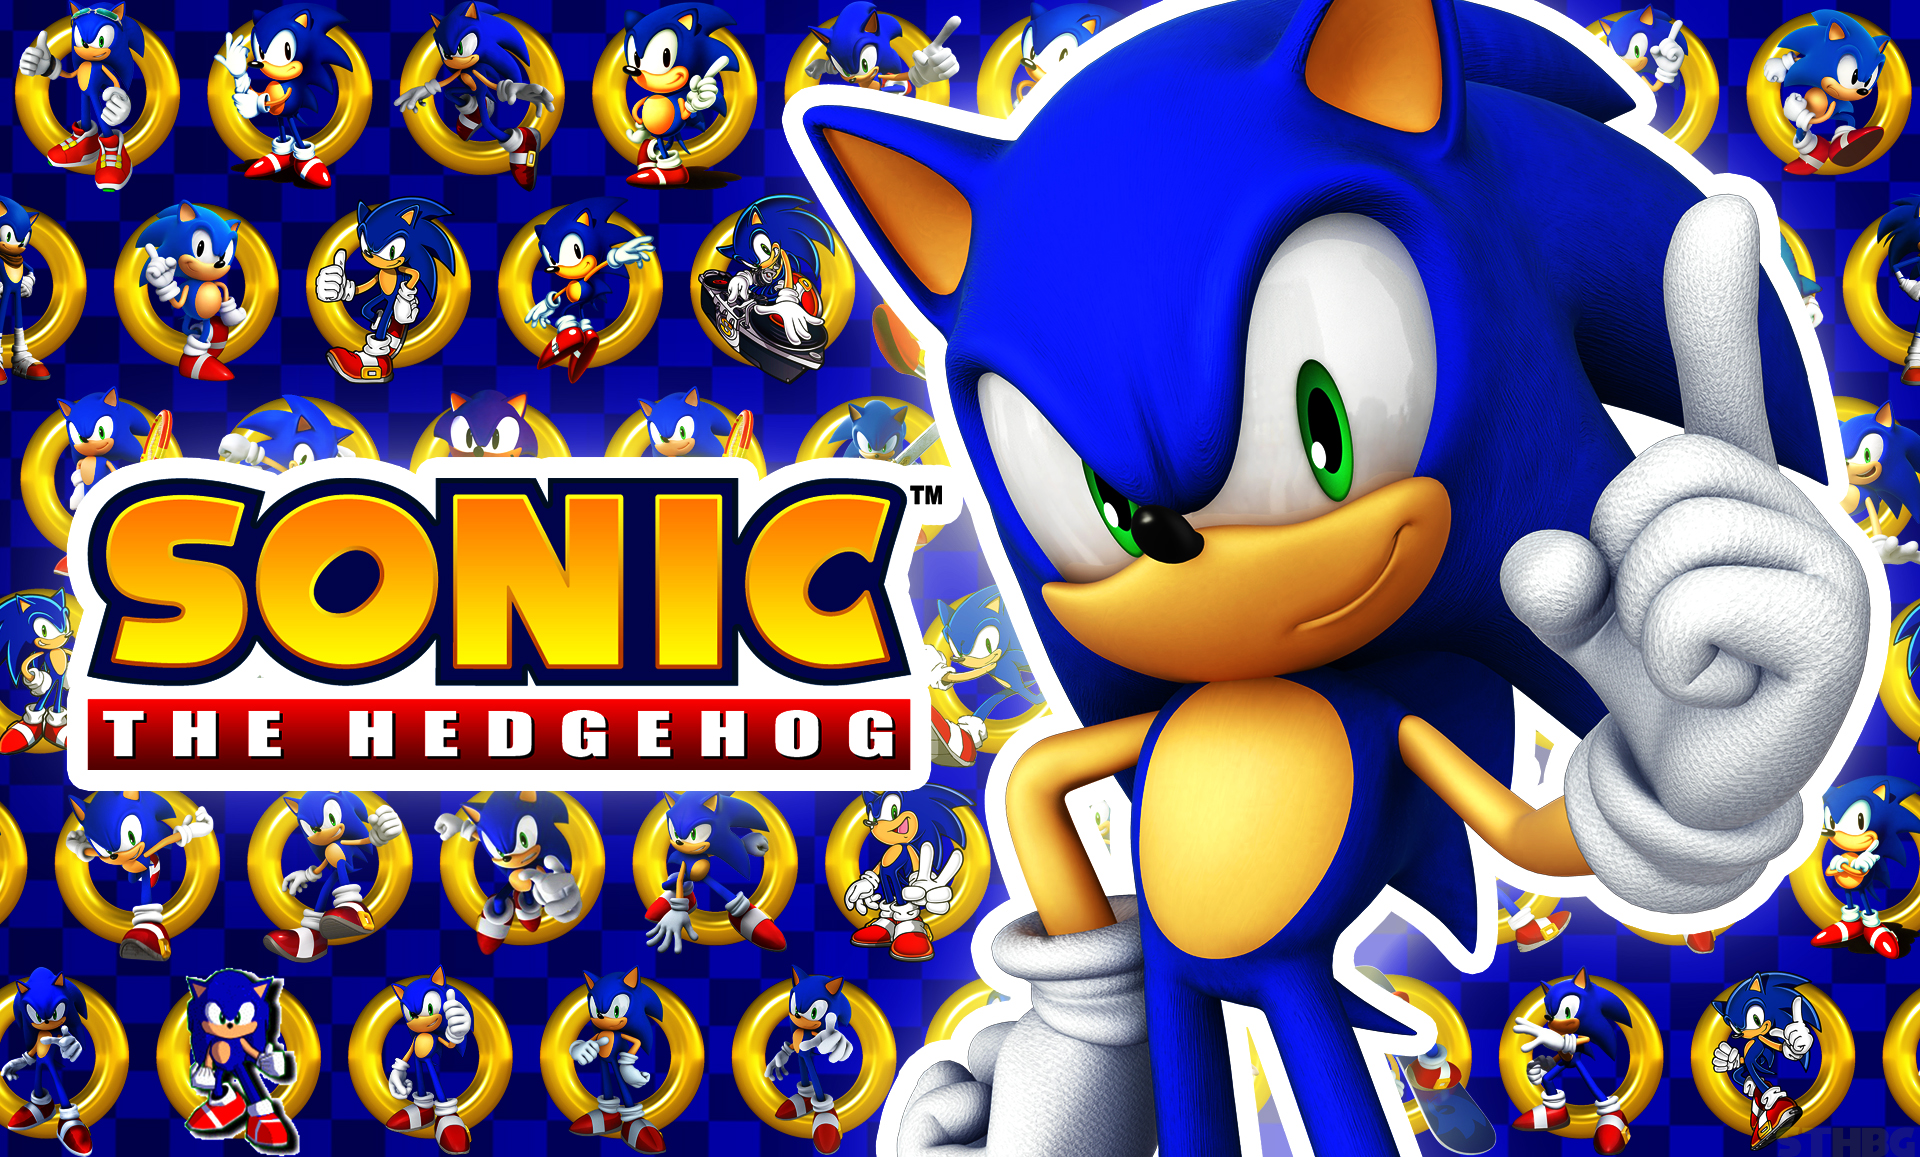 Sonic The Hedgehog - Wallpaper by SonicTheHedgehogBG on DeviantArt